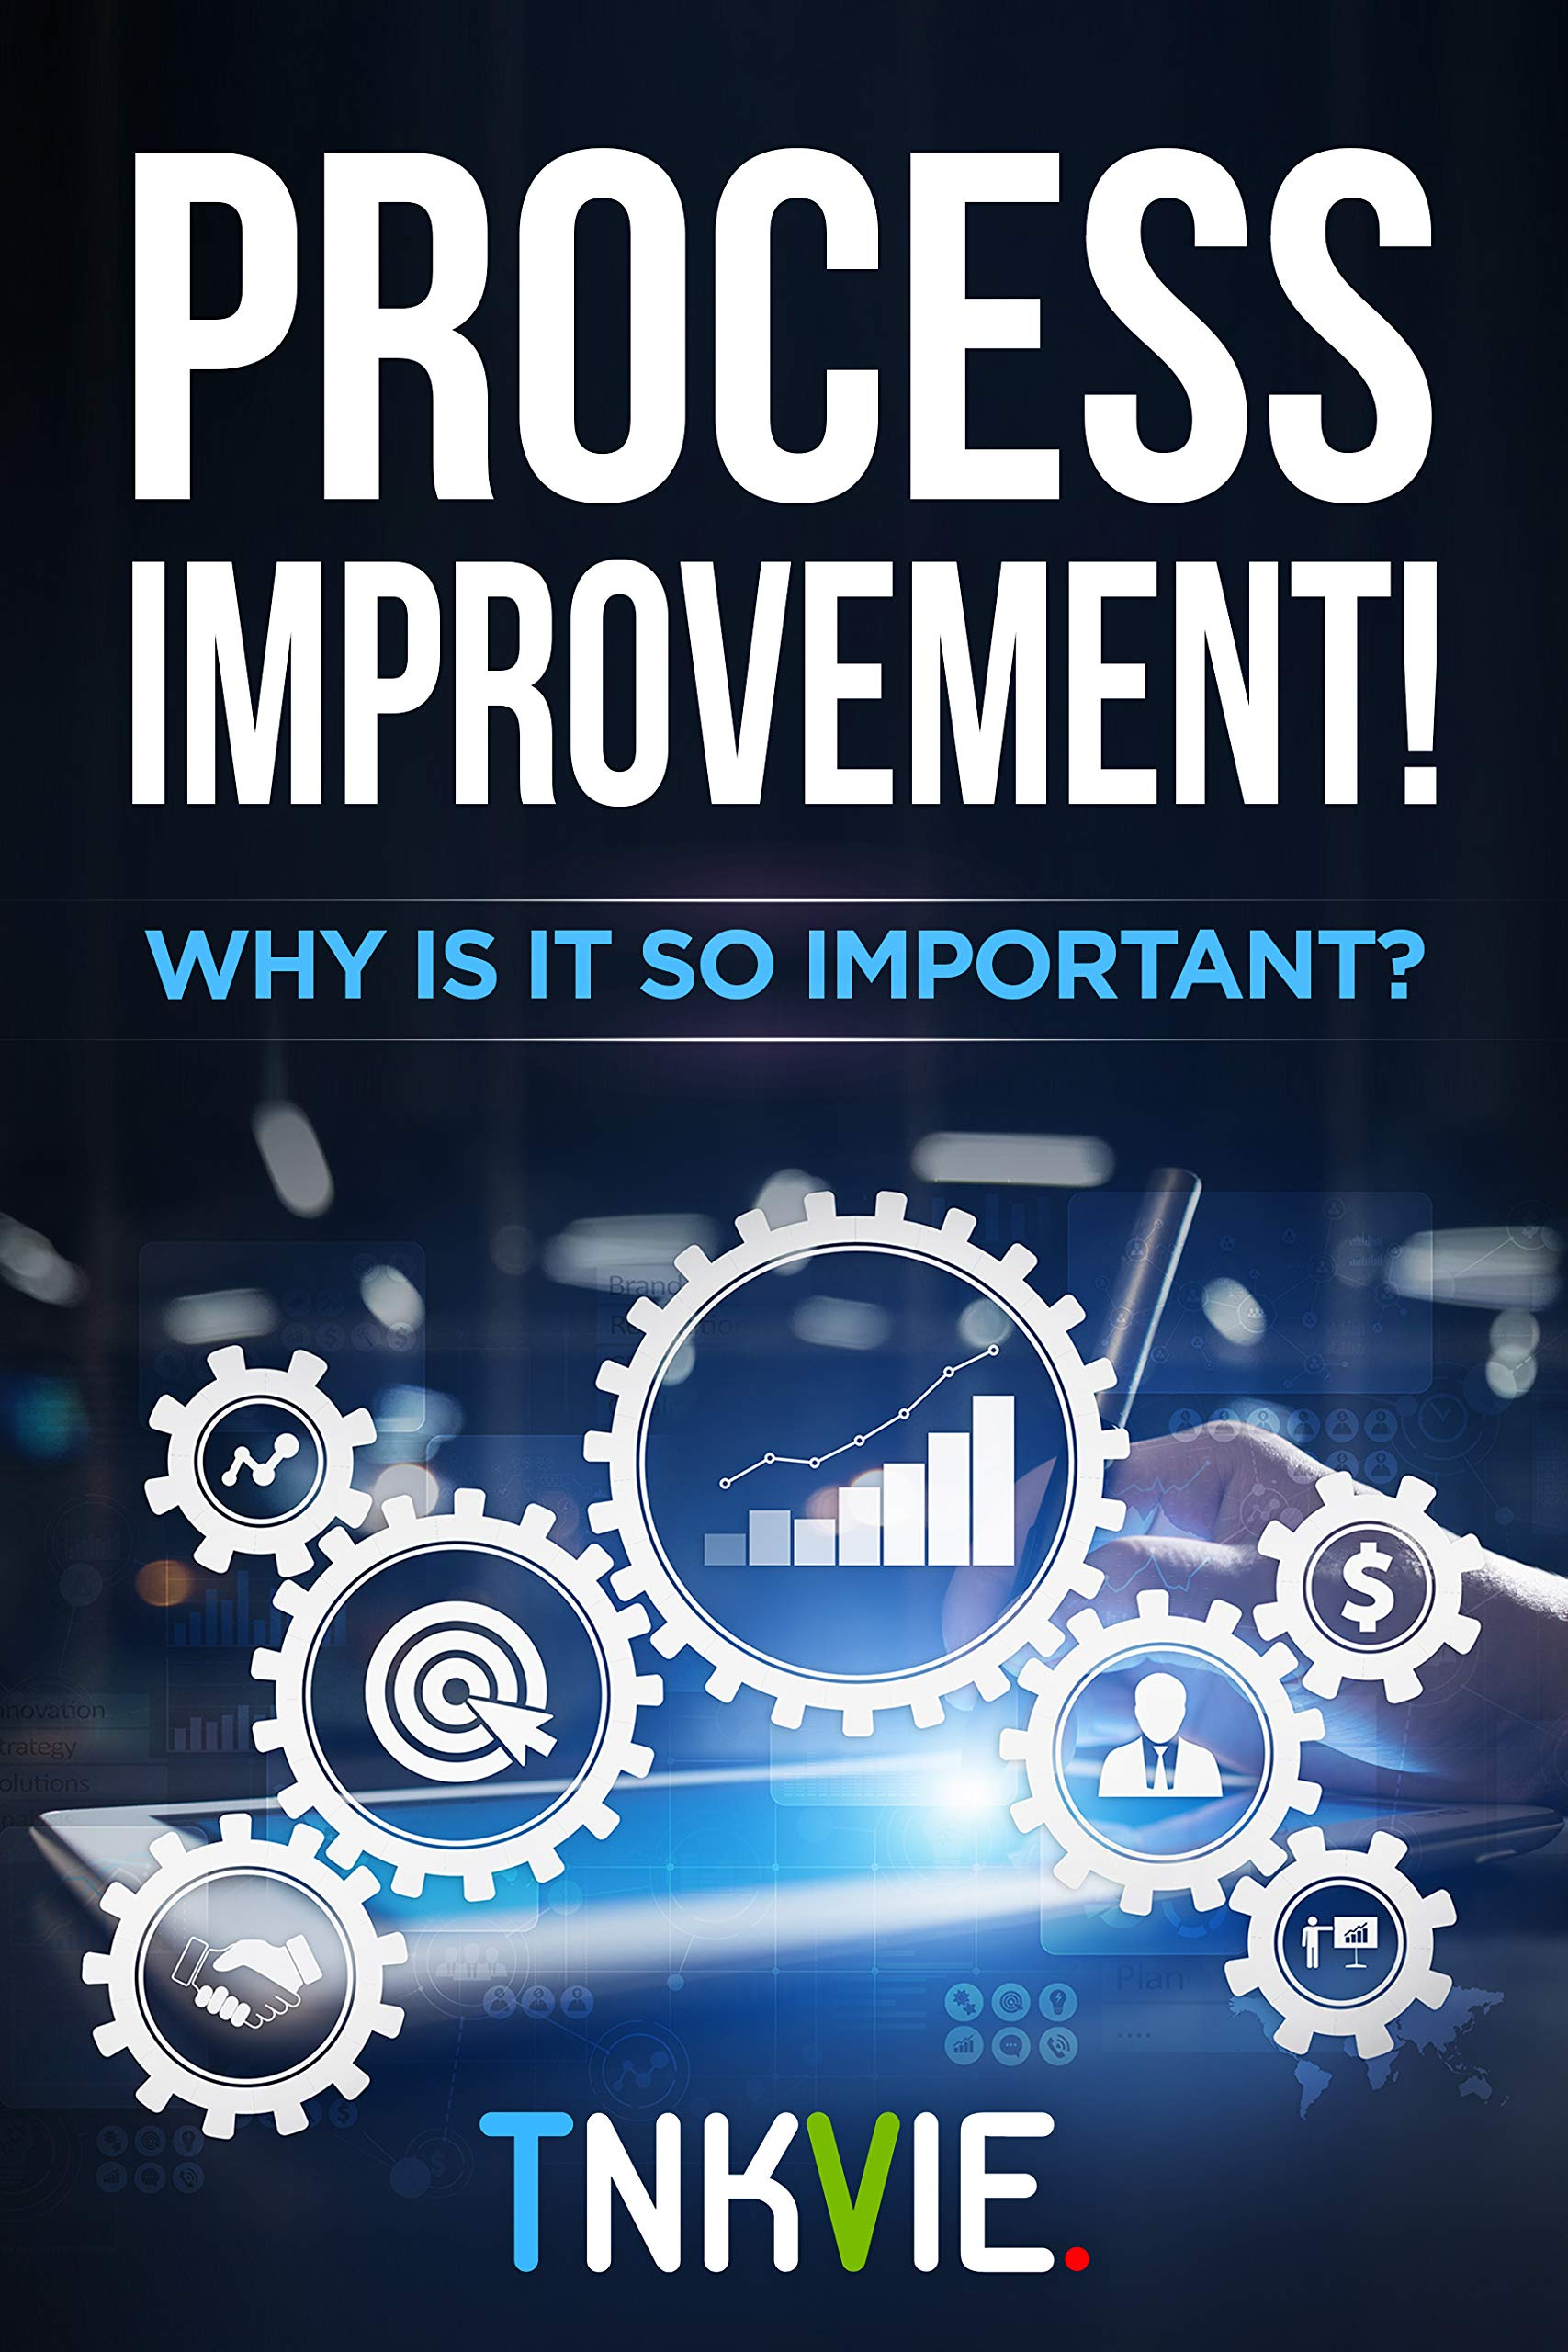 PROCESS IMPROVEMENT! Why Its So Important.